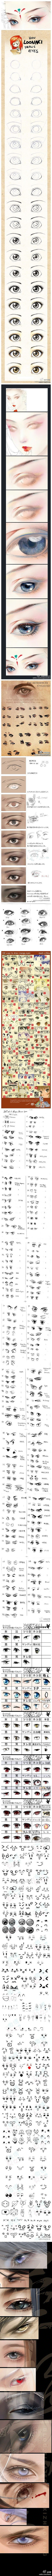 How to Draw Eyes and faces